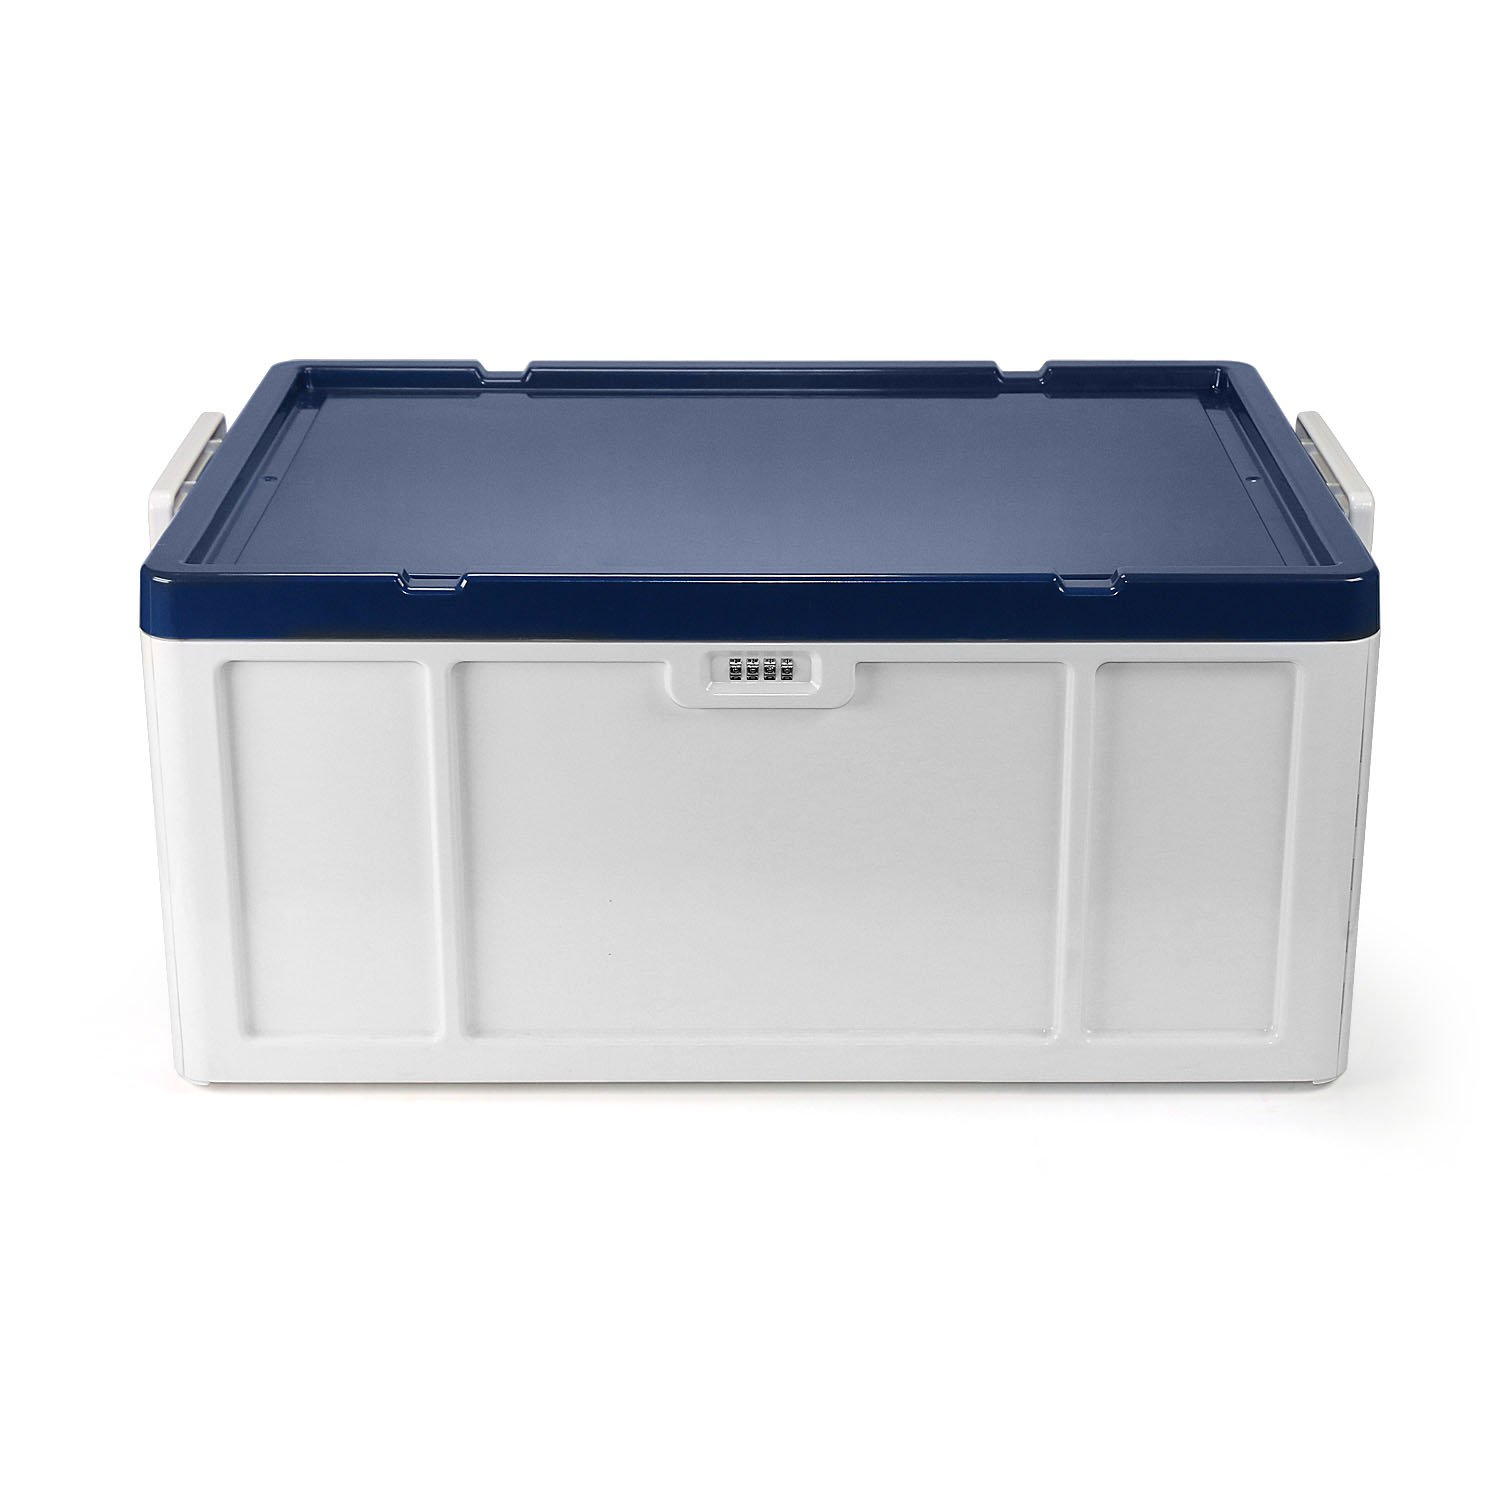 EVERTOP Extra Large Deck Box for Home, Office, Car, White with Code Lock (New A-Blue)